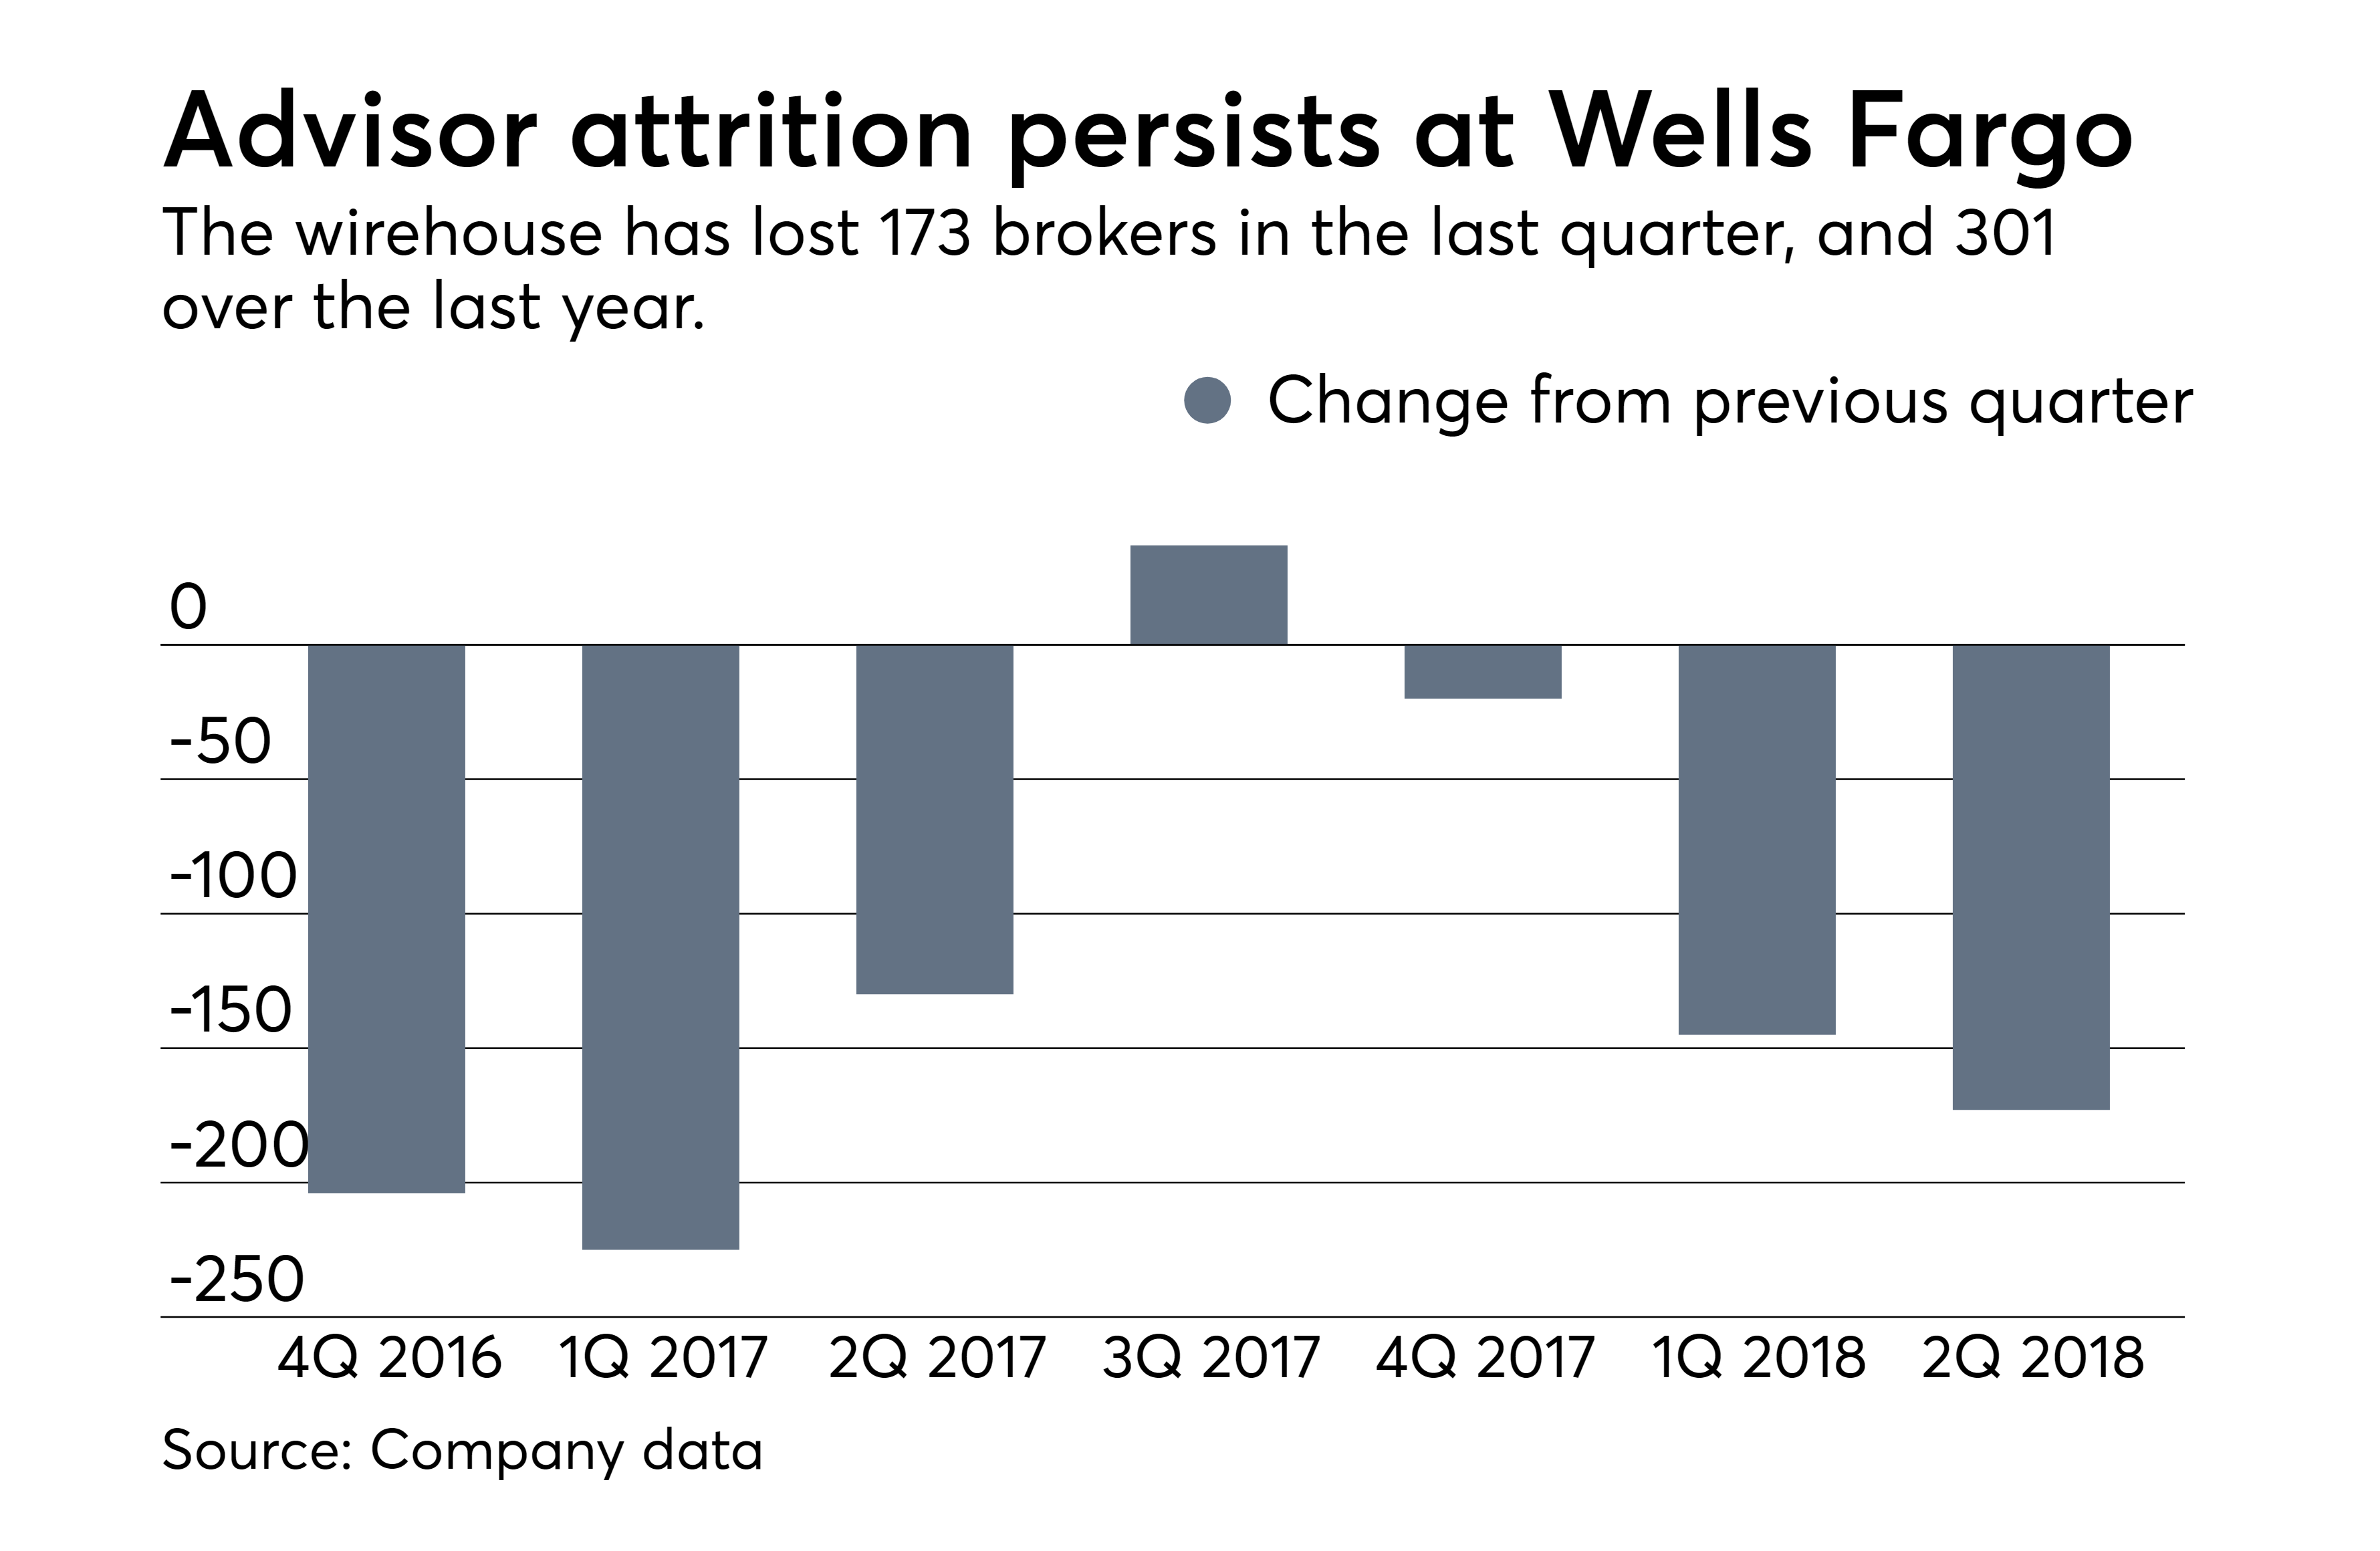 https://assets.sourcemedia.com/87/81/39878c574dd6bc0e5594010a1998/ows-07-13-2018-wells-fargo-advisor-attrition-persists.png